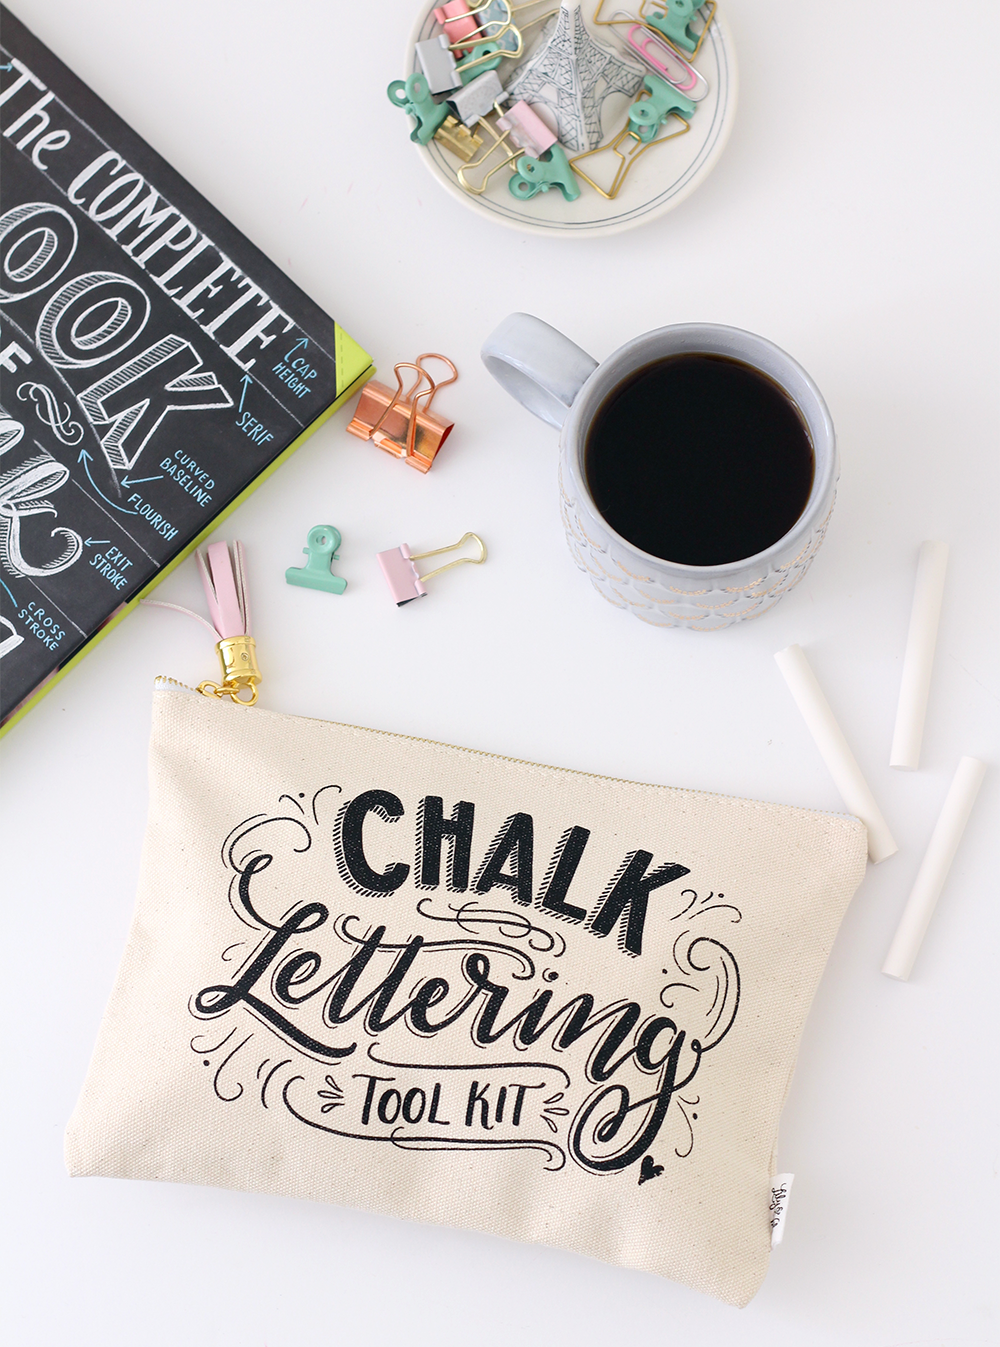 The Chalk Lettering ToolKit combines all of Valerie McKeehan's, author of the Complete Book of Chalk Lettering, favorite supplies in one place!